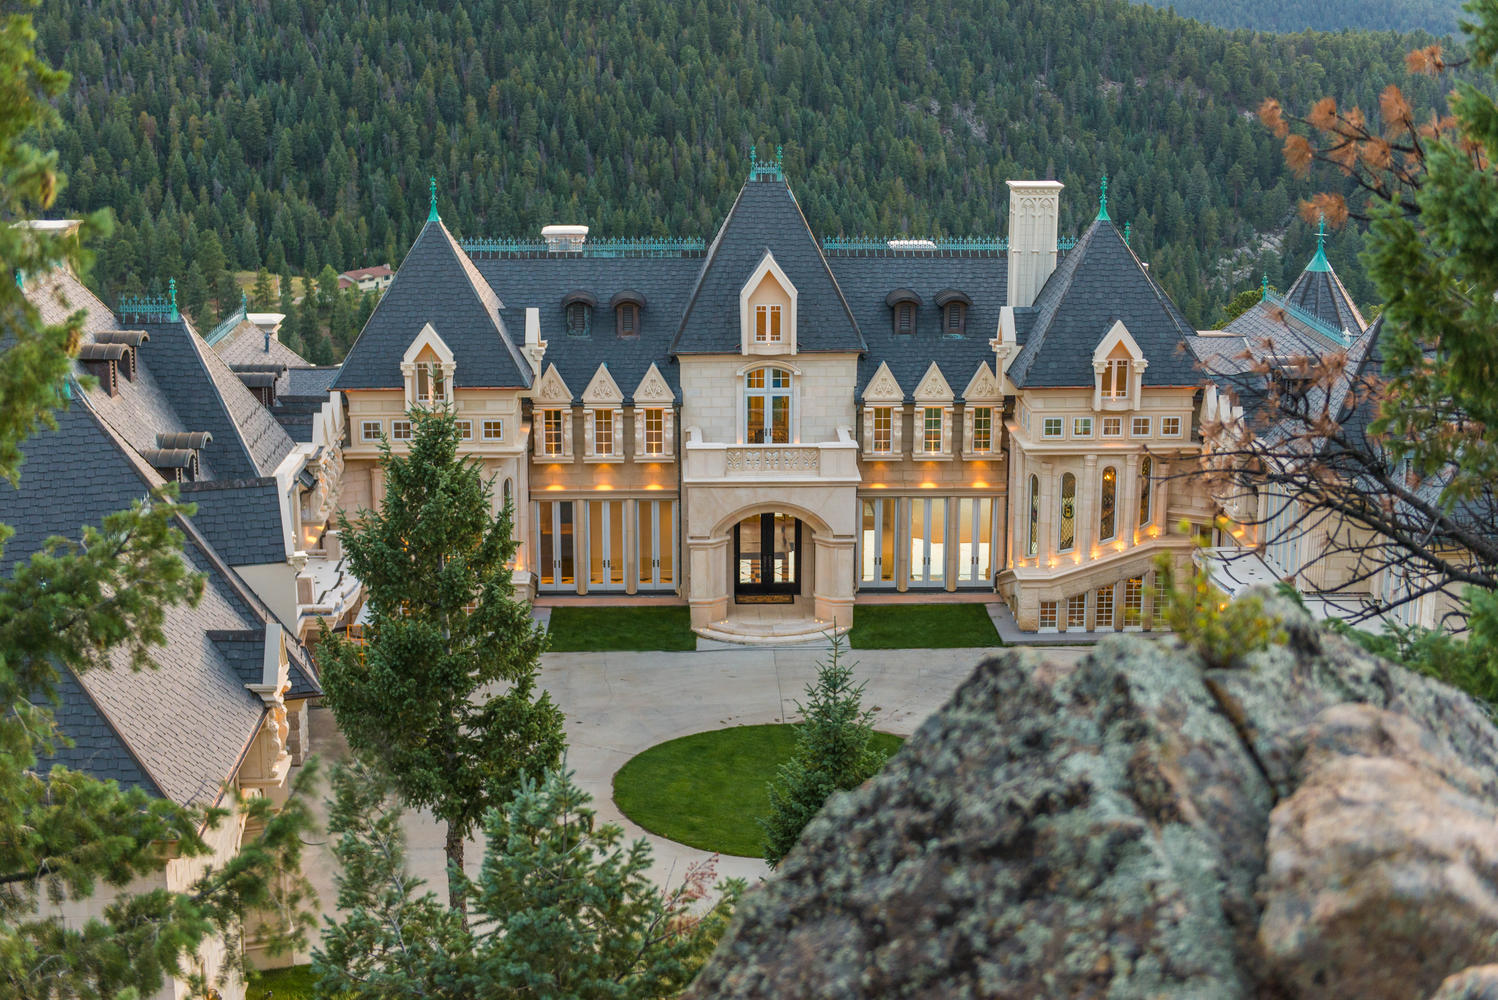 Maison unifamiliale pour l Vente à The largest residential undertaking in Evergreen 600 Chateau V Rd Evergreen, Colorado, 80439 États-Unis